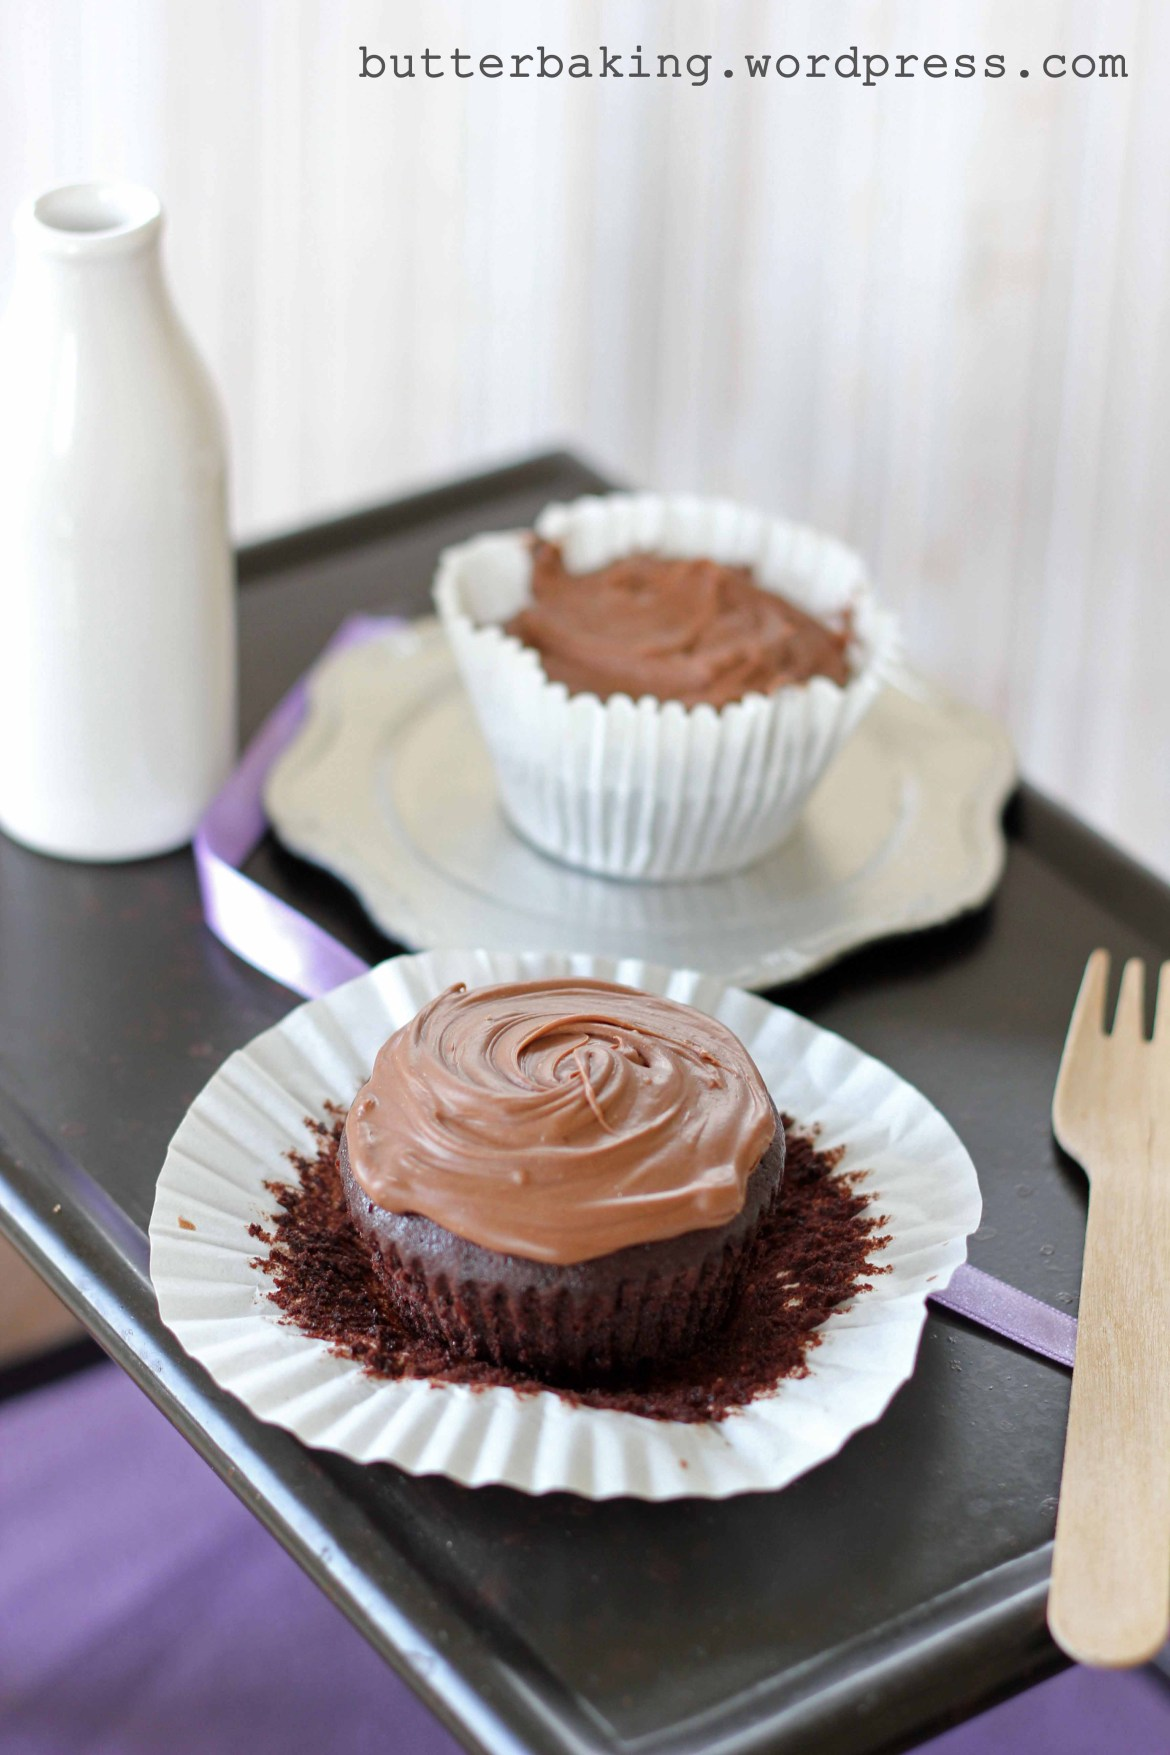 Brownie Cupcakes with Chocolate Hazelnut Frosting | Butter Baking